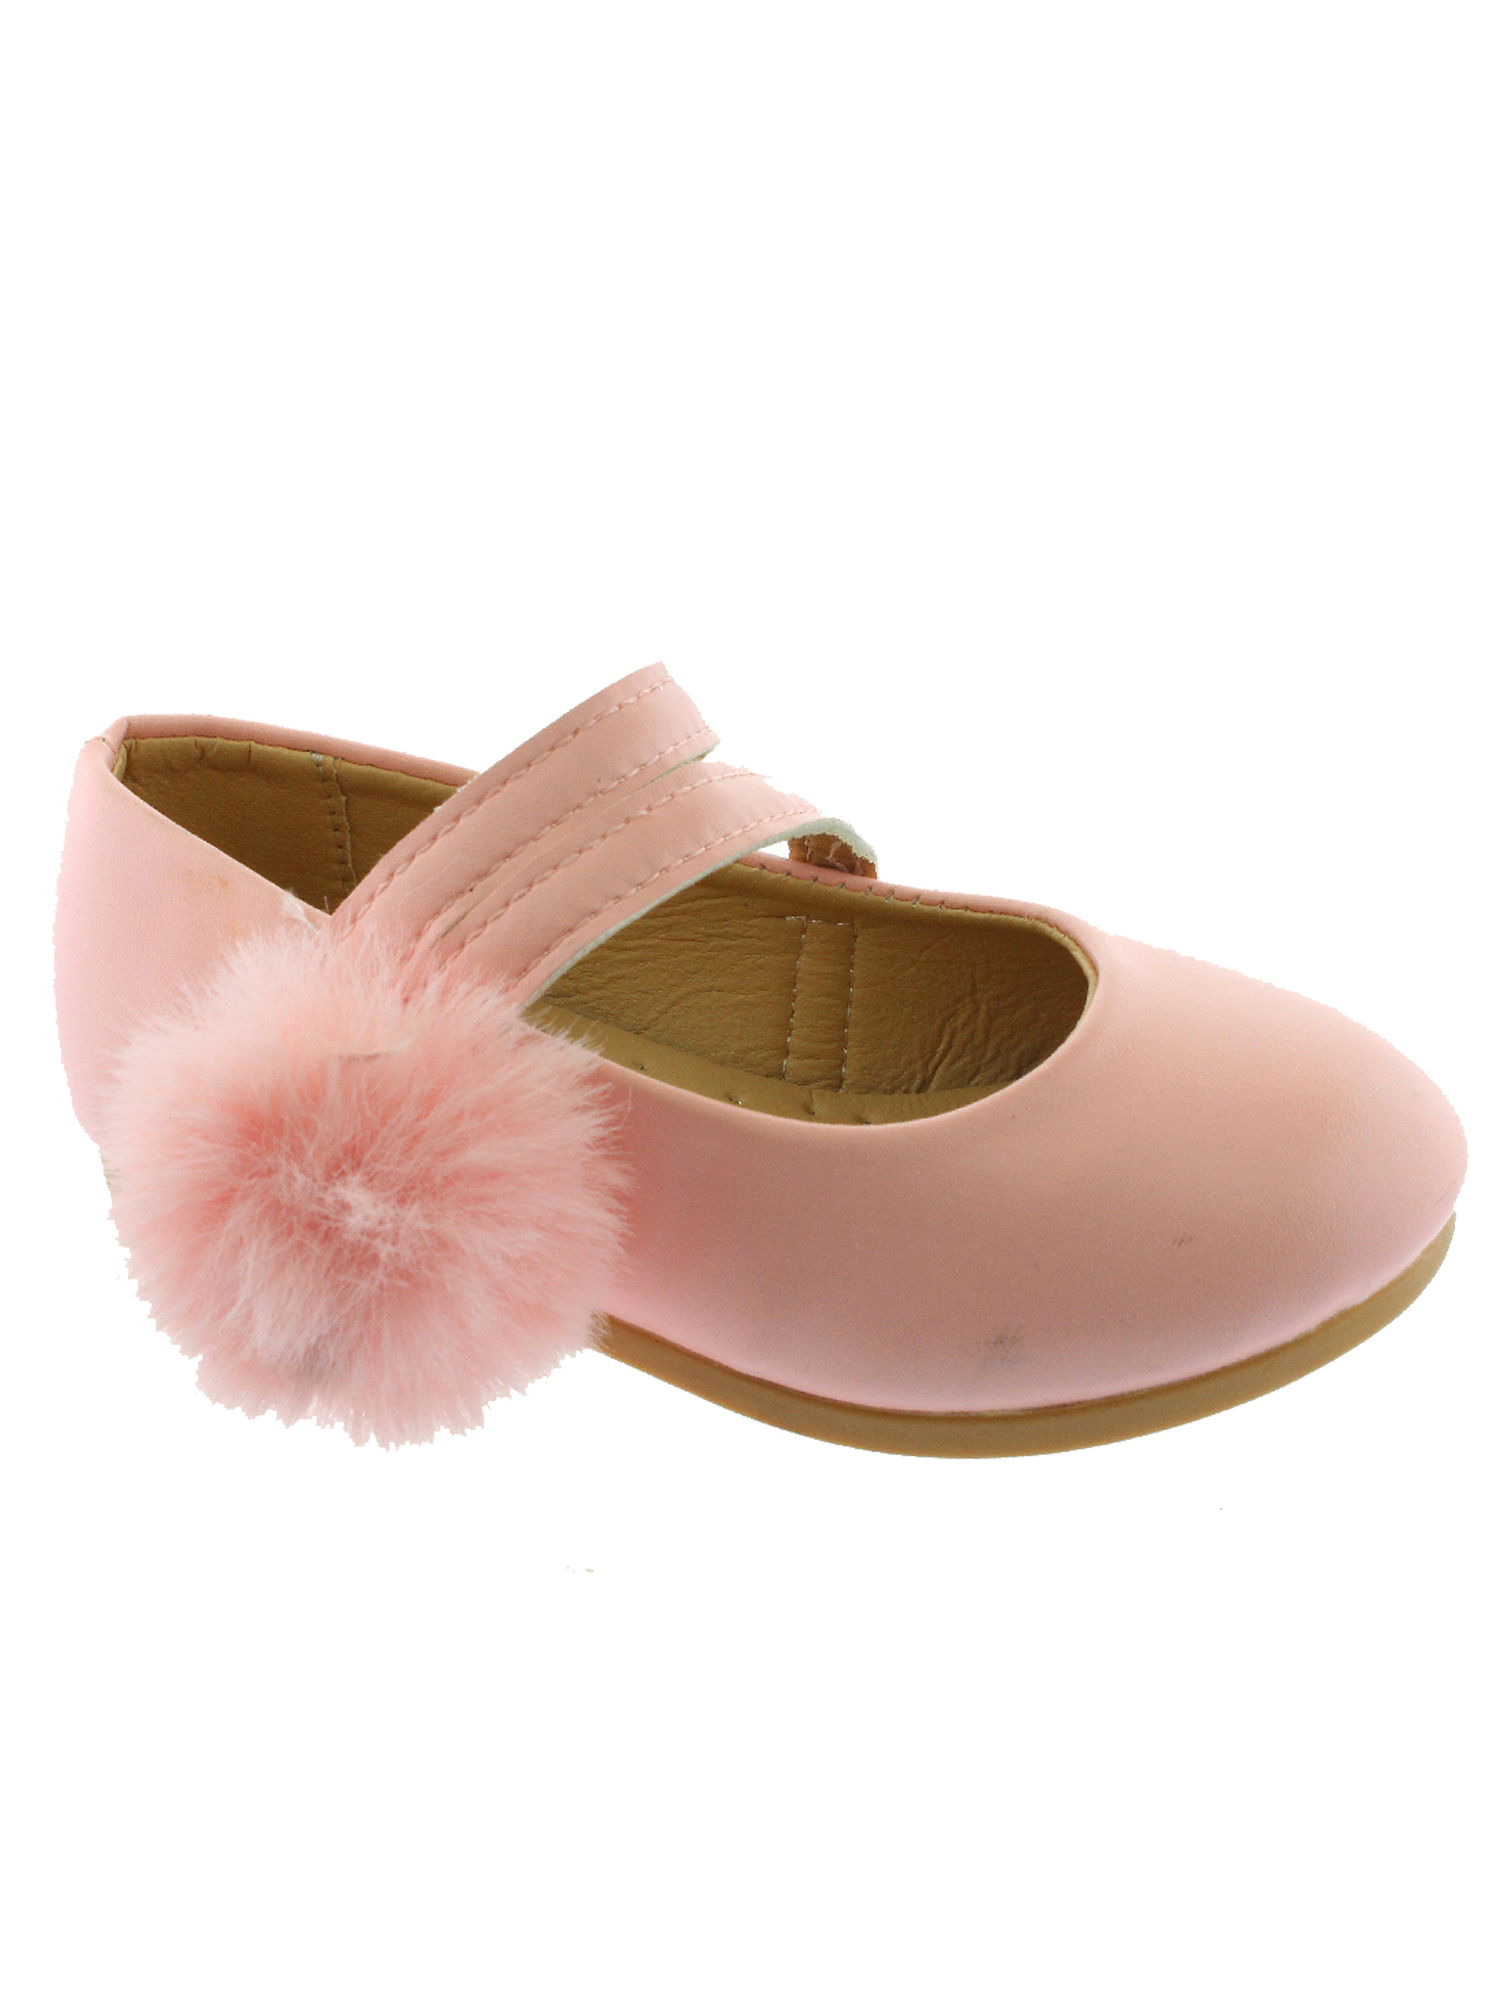 Kate Girls Pink Double Strap Pom-Pom Mary Jane Shoes